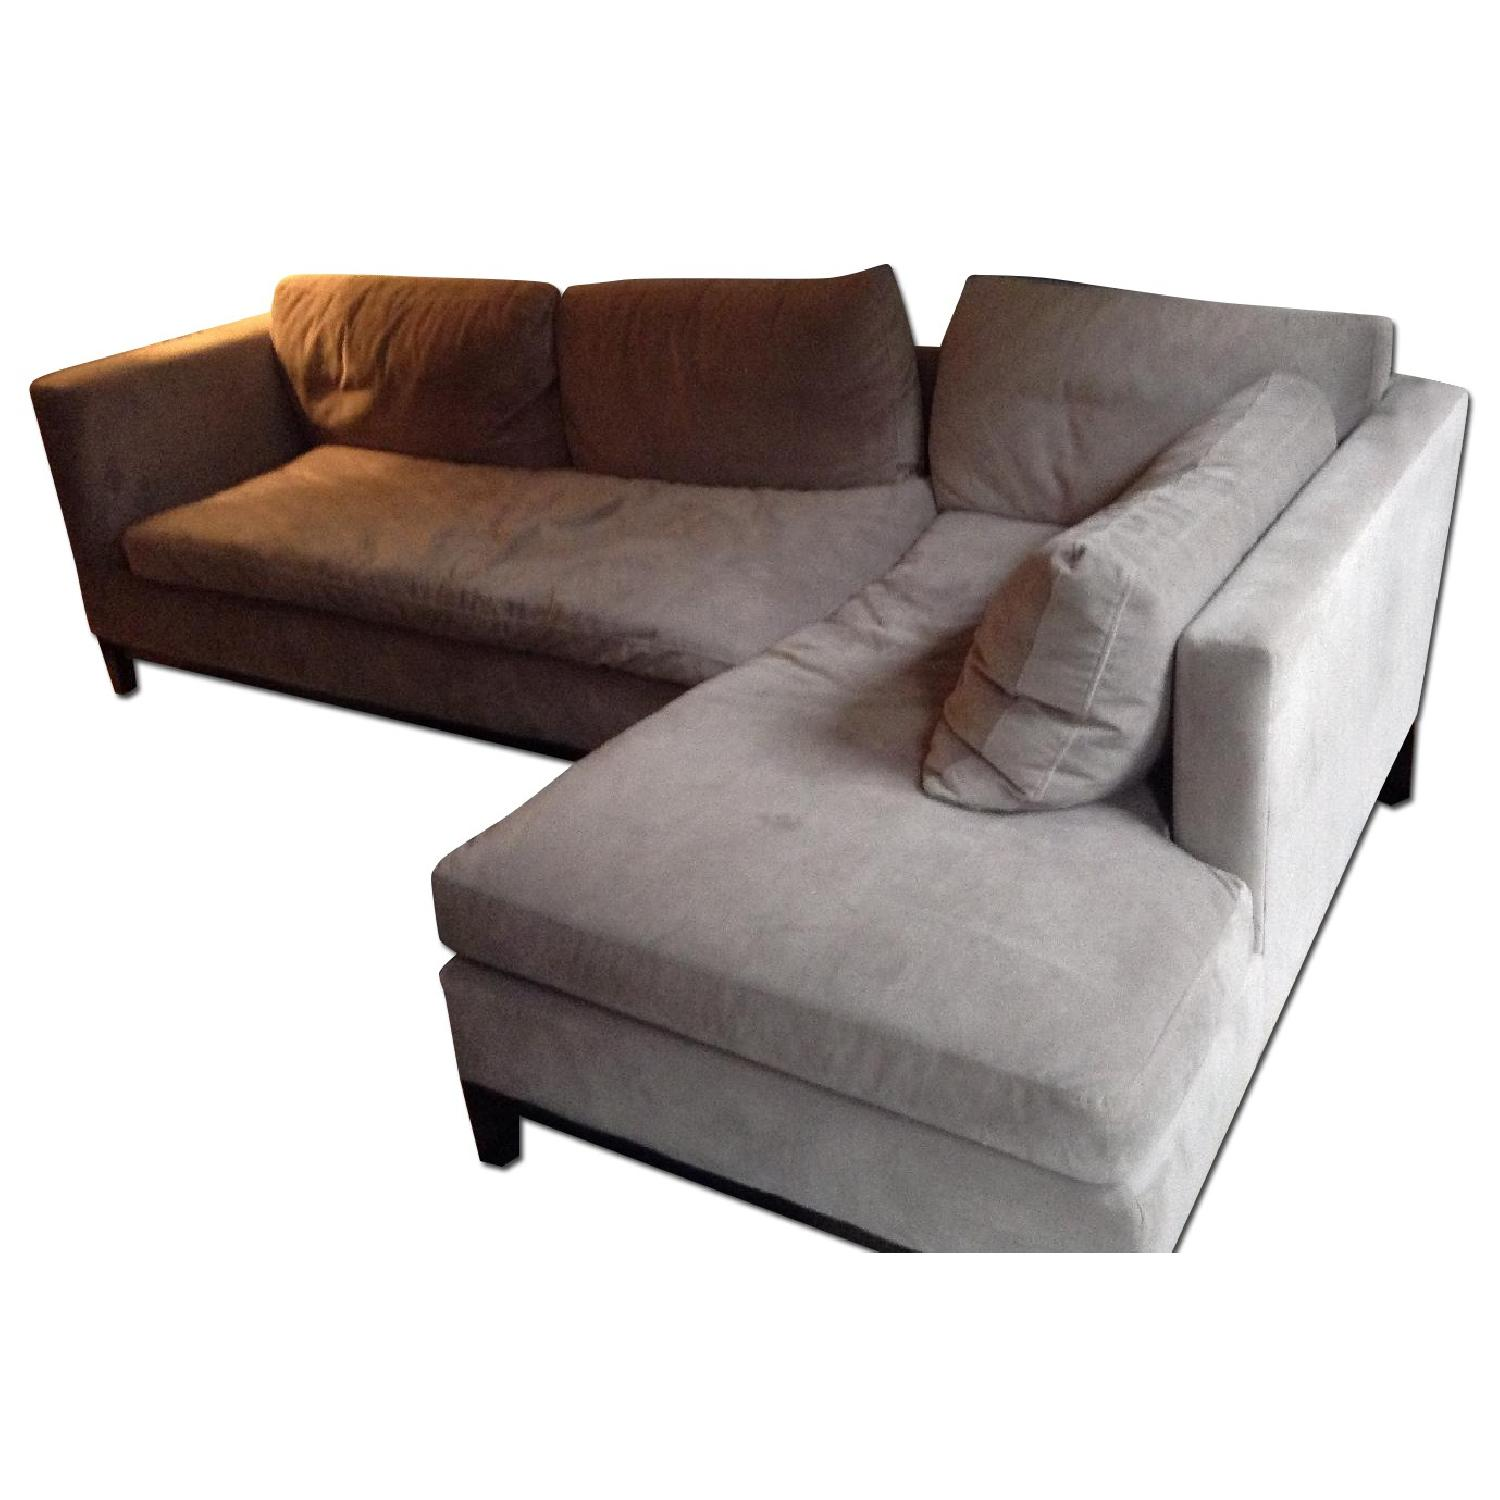 West Elm Blake Sectional Sofa w/ Chaise - image-0